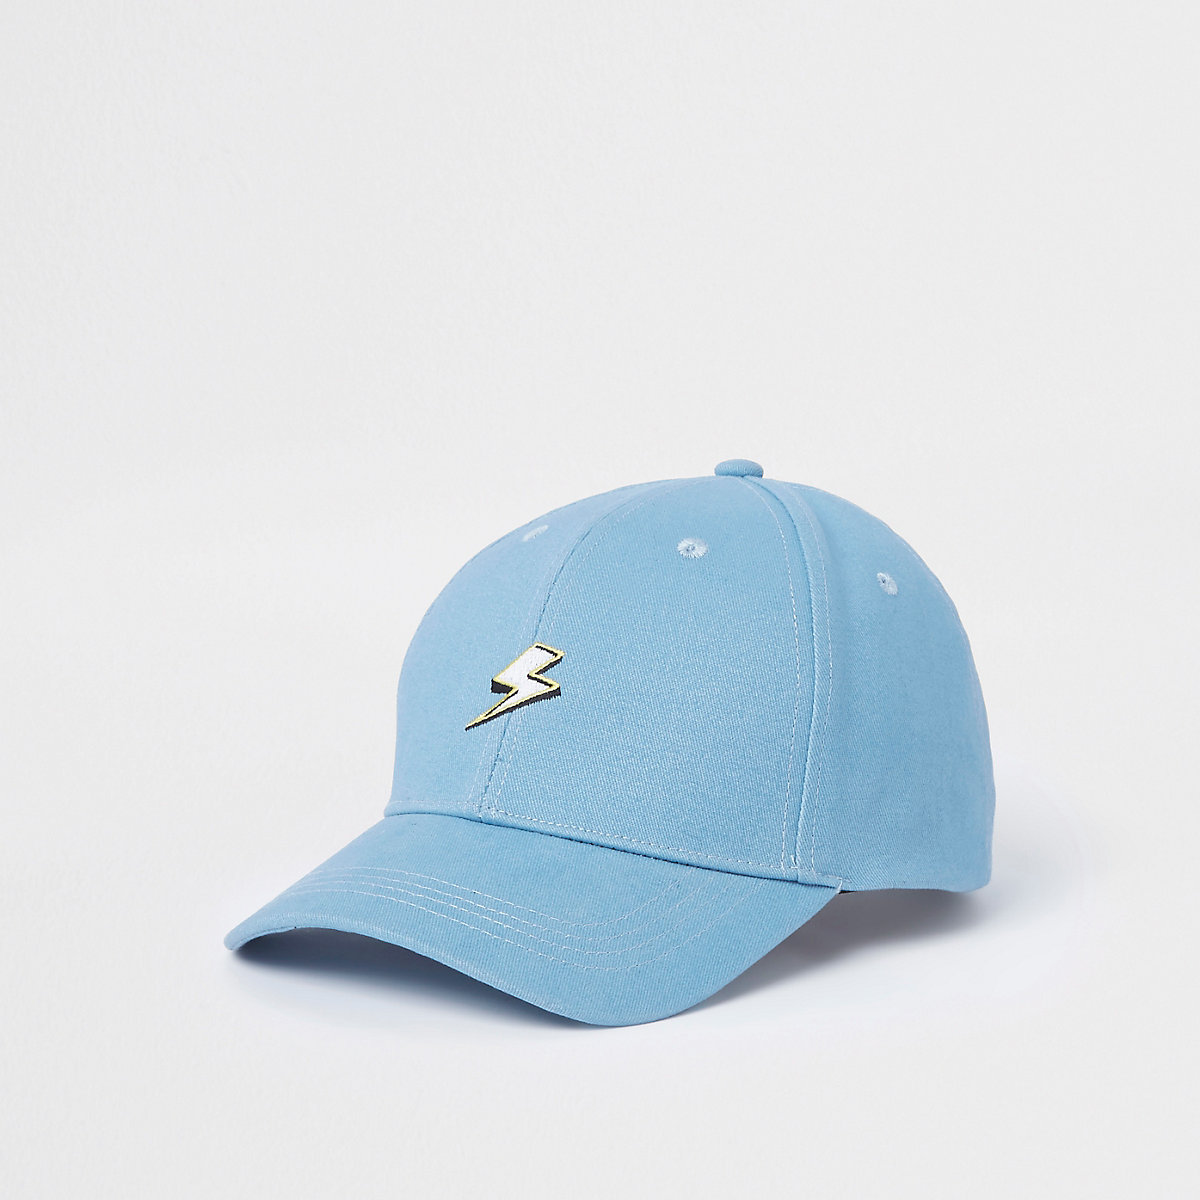 Blue lightning bolt baseball cap